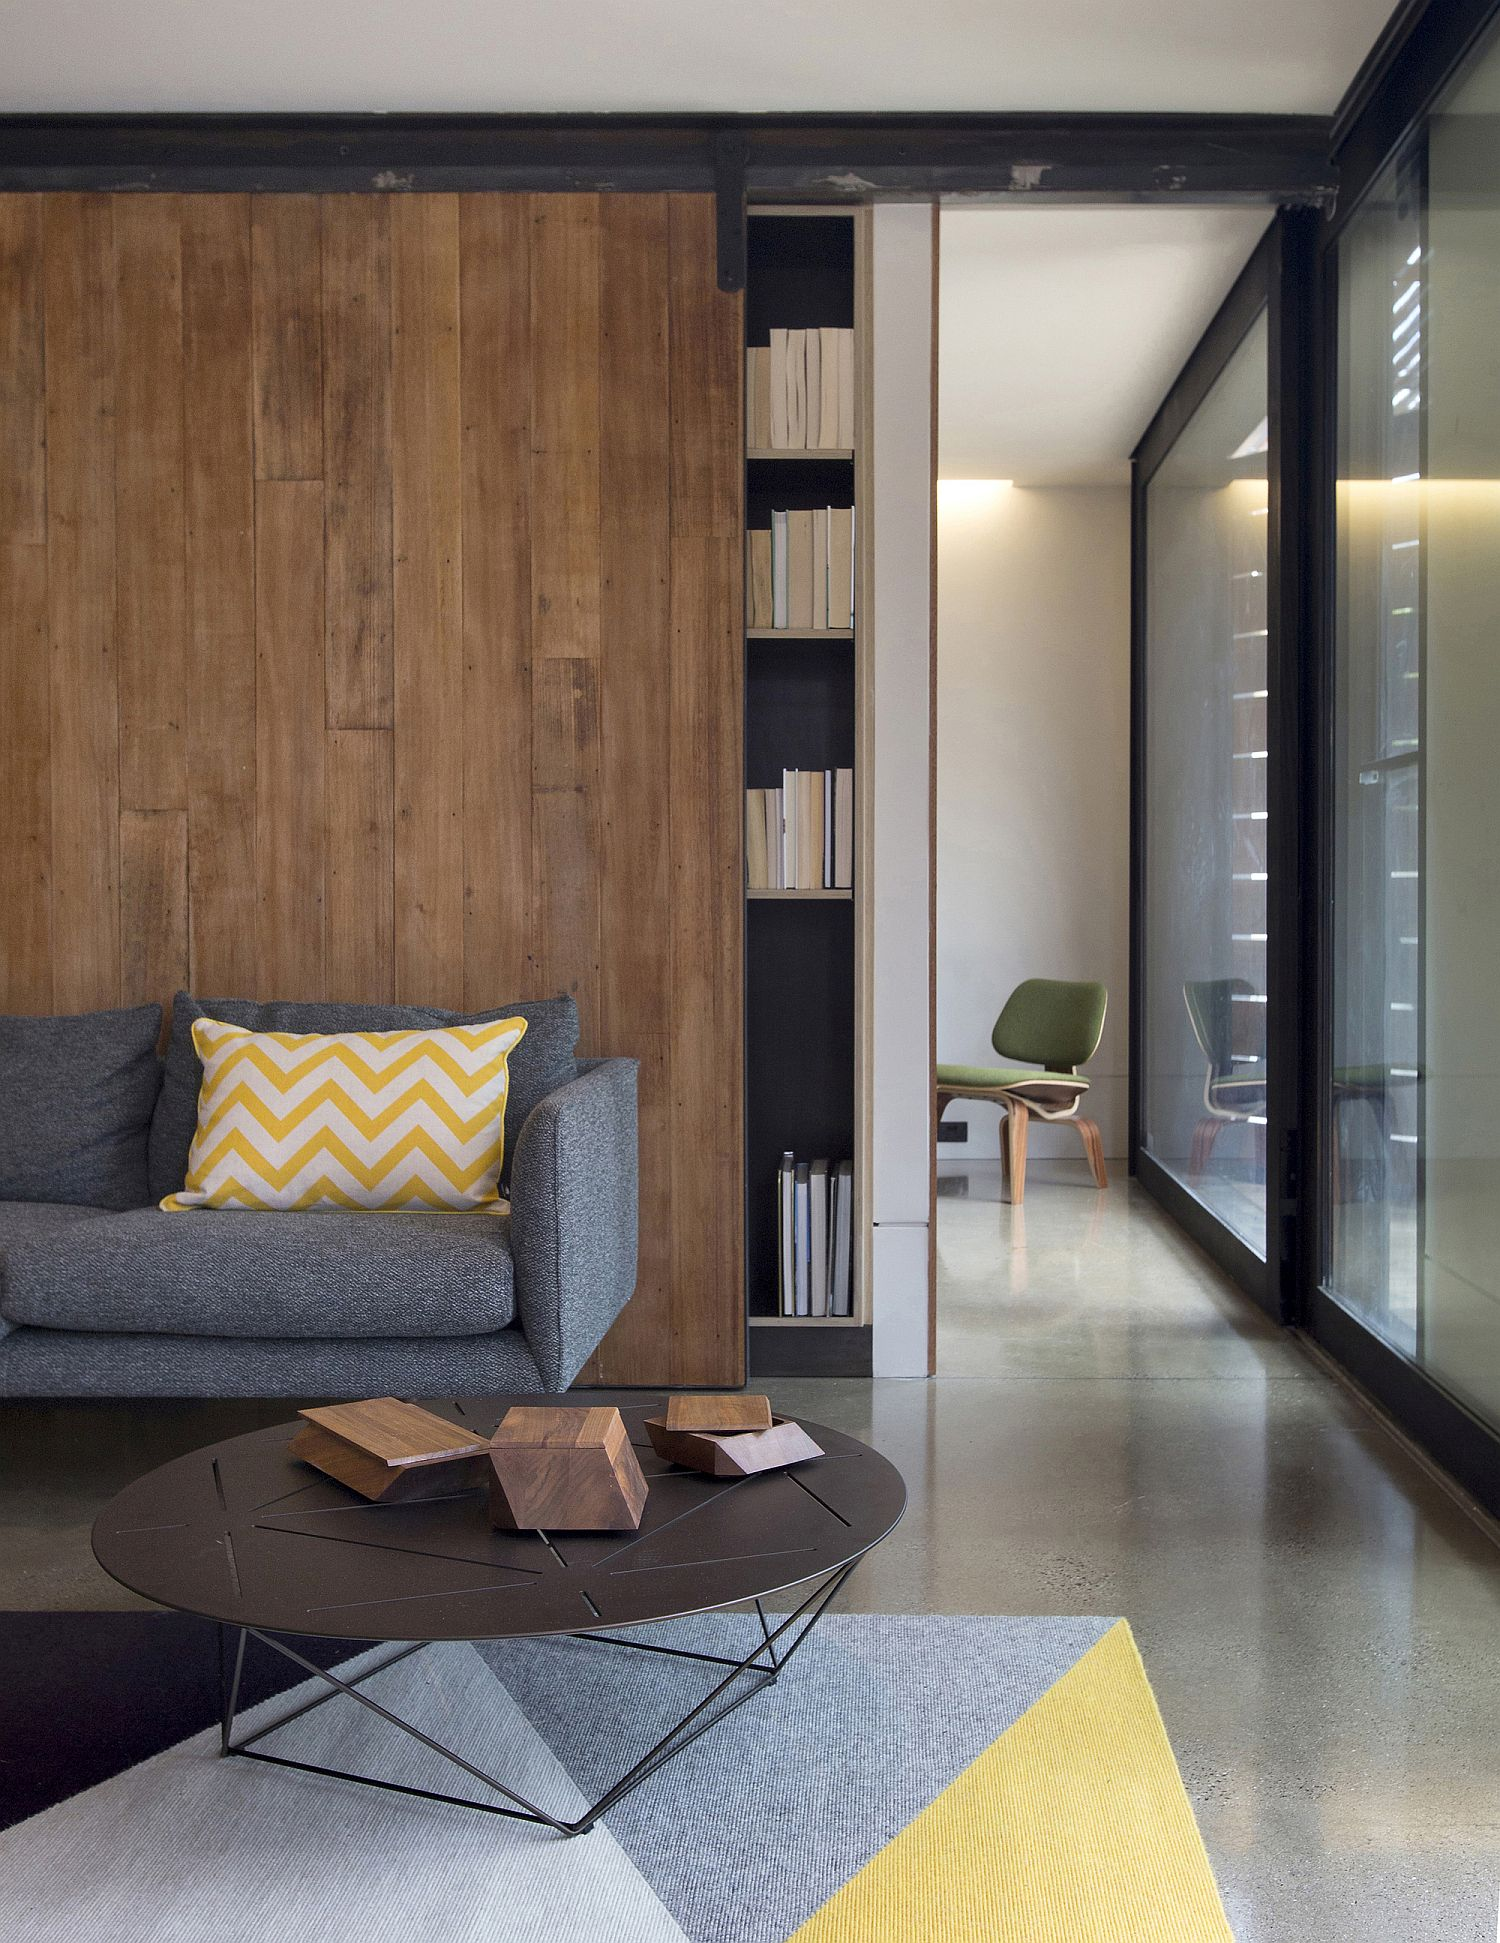 Interior of the small, budget Northcote home with woodsy charm